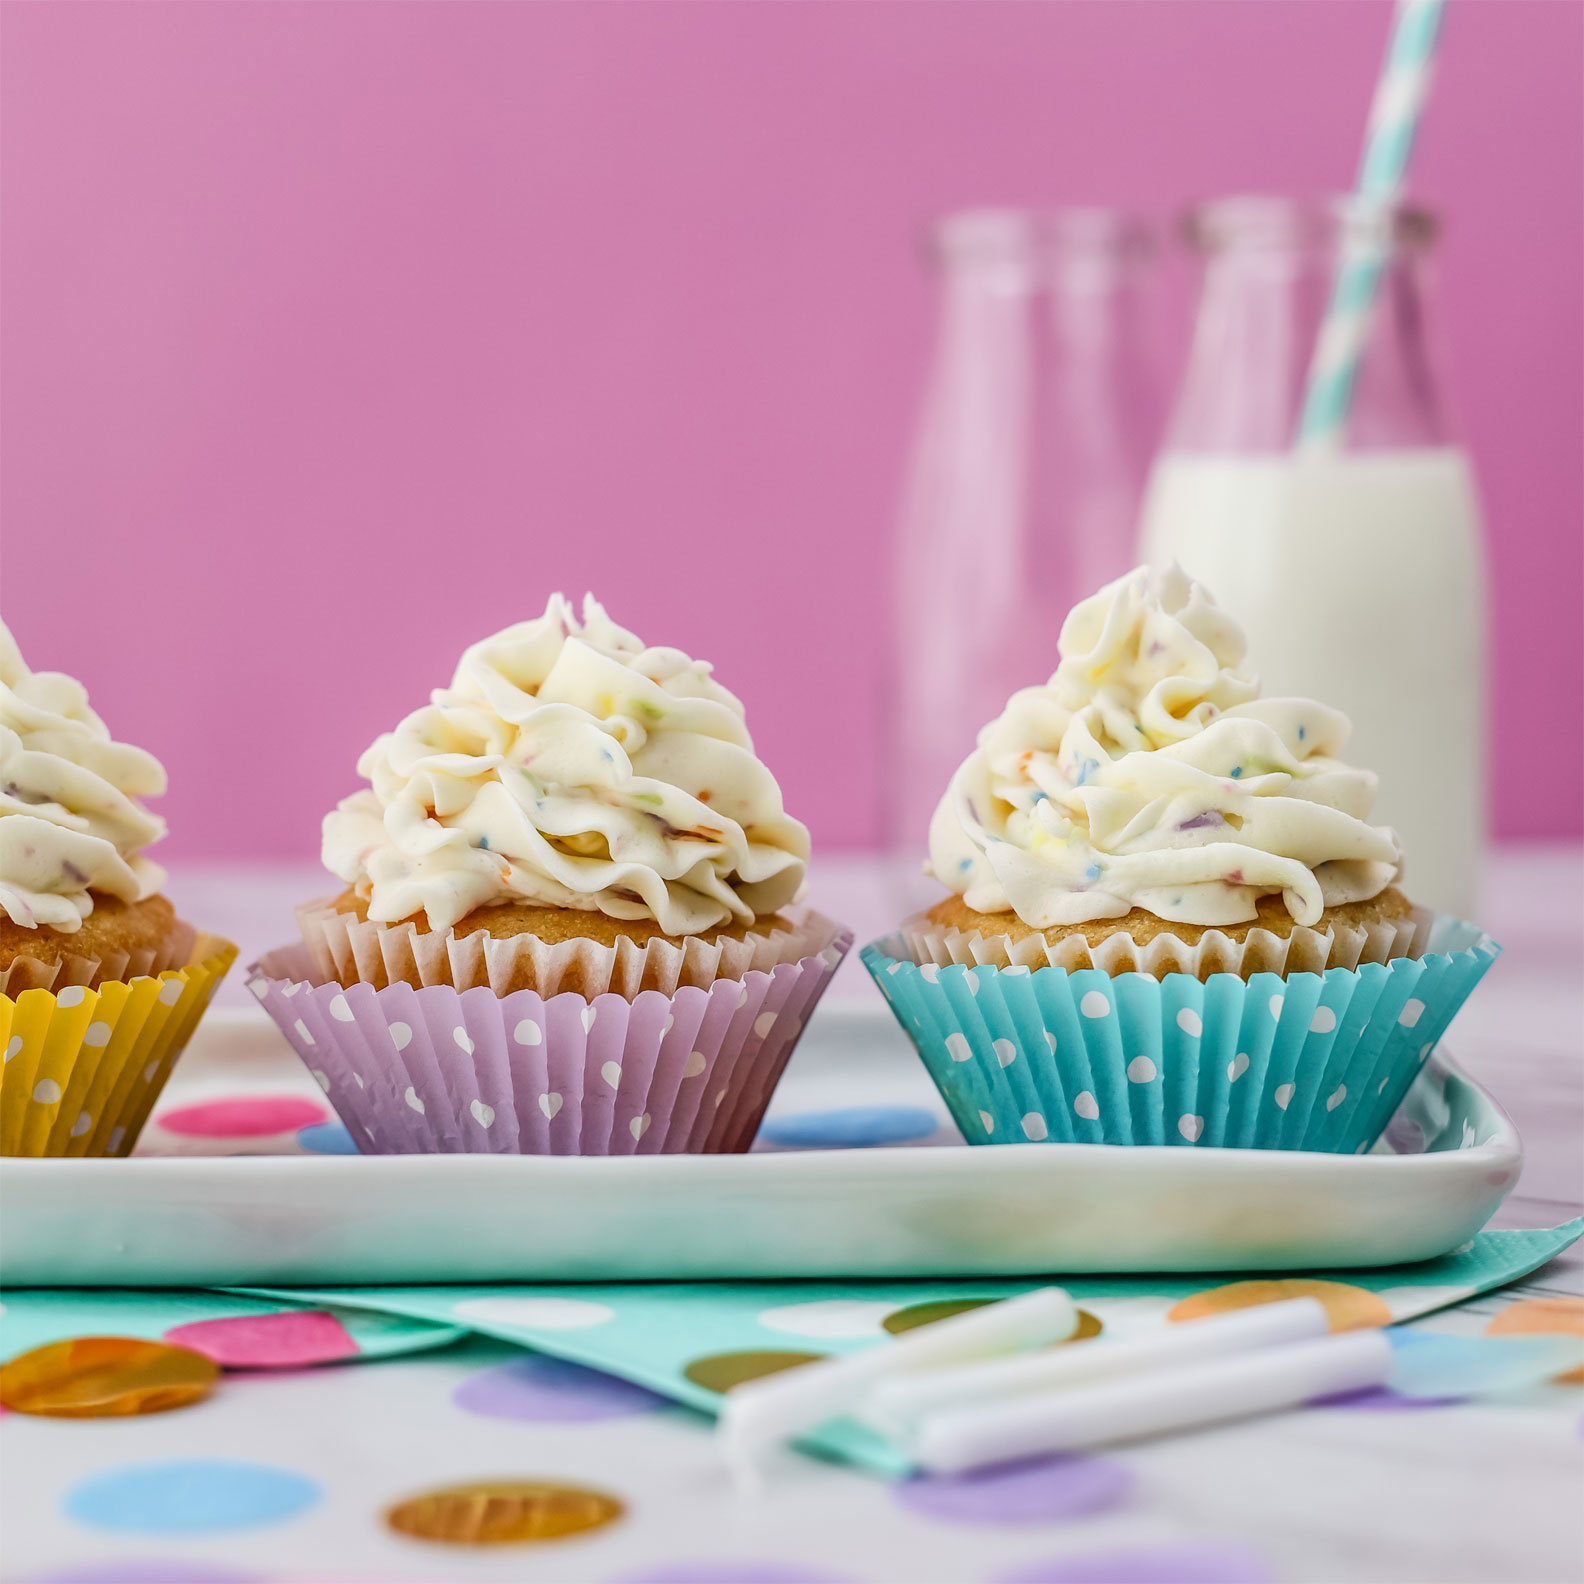 Kate's-Safe-&-Sweet---Confetti-Frosting-on-Cupcakes